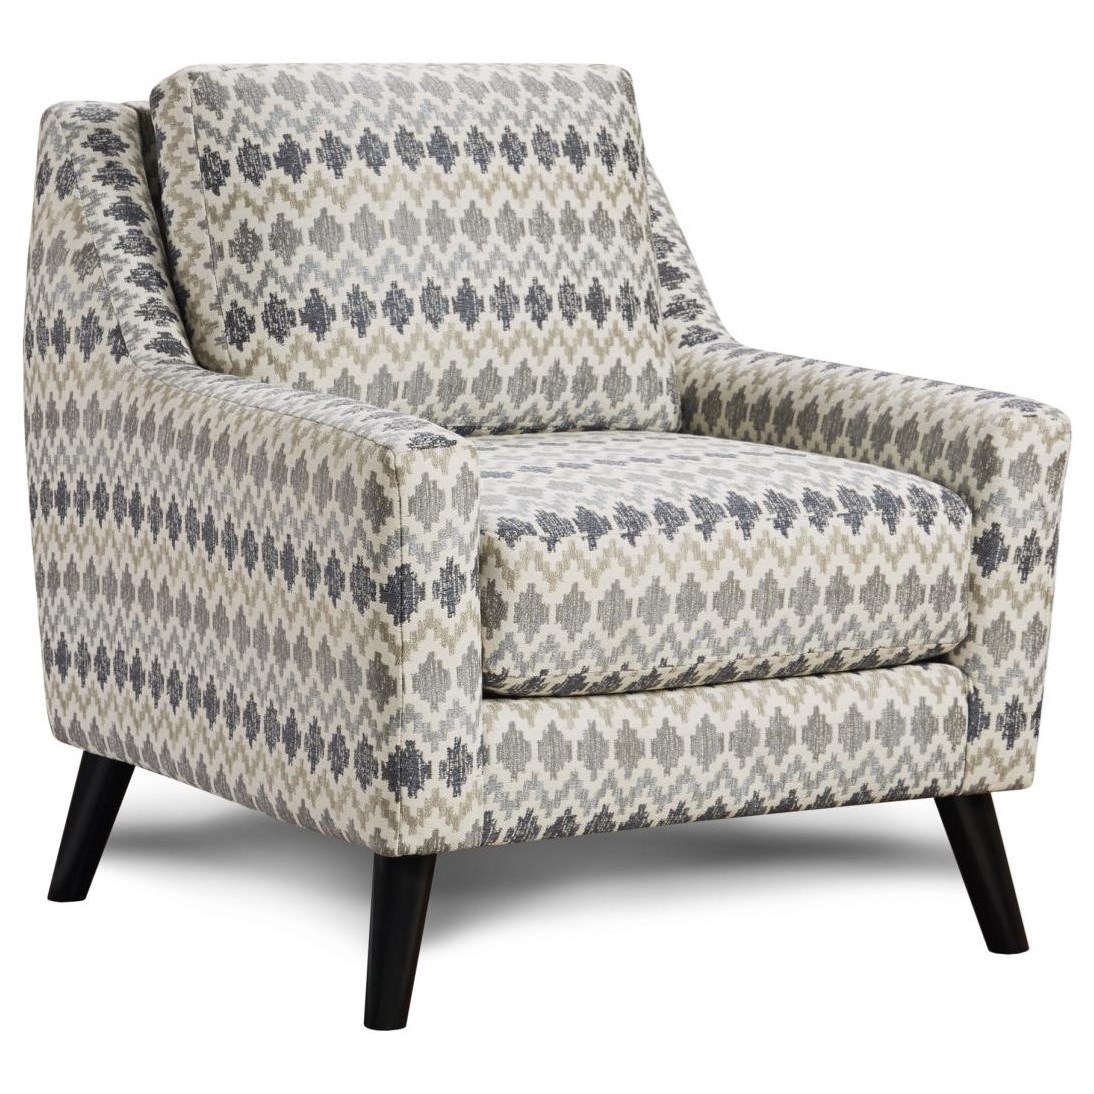 290 Upholstered Chair by Fusion Furniture at Wilson's Furniture